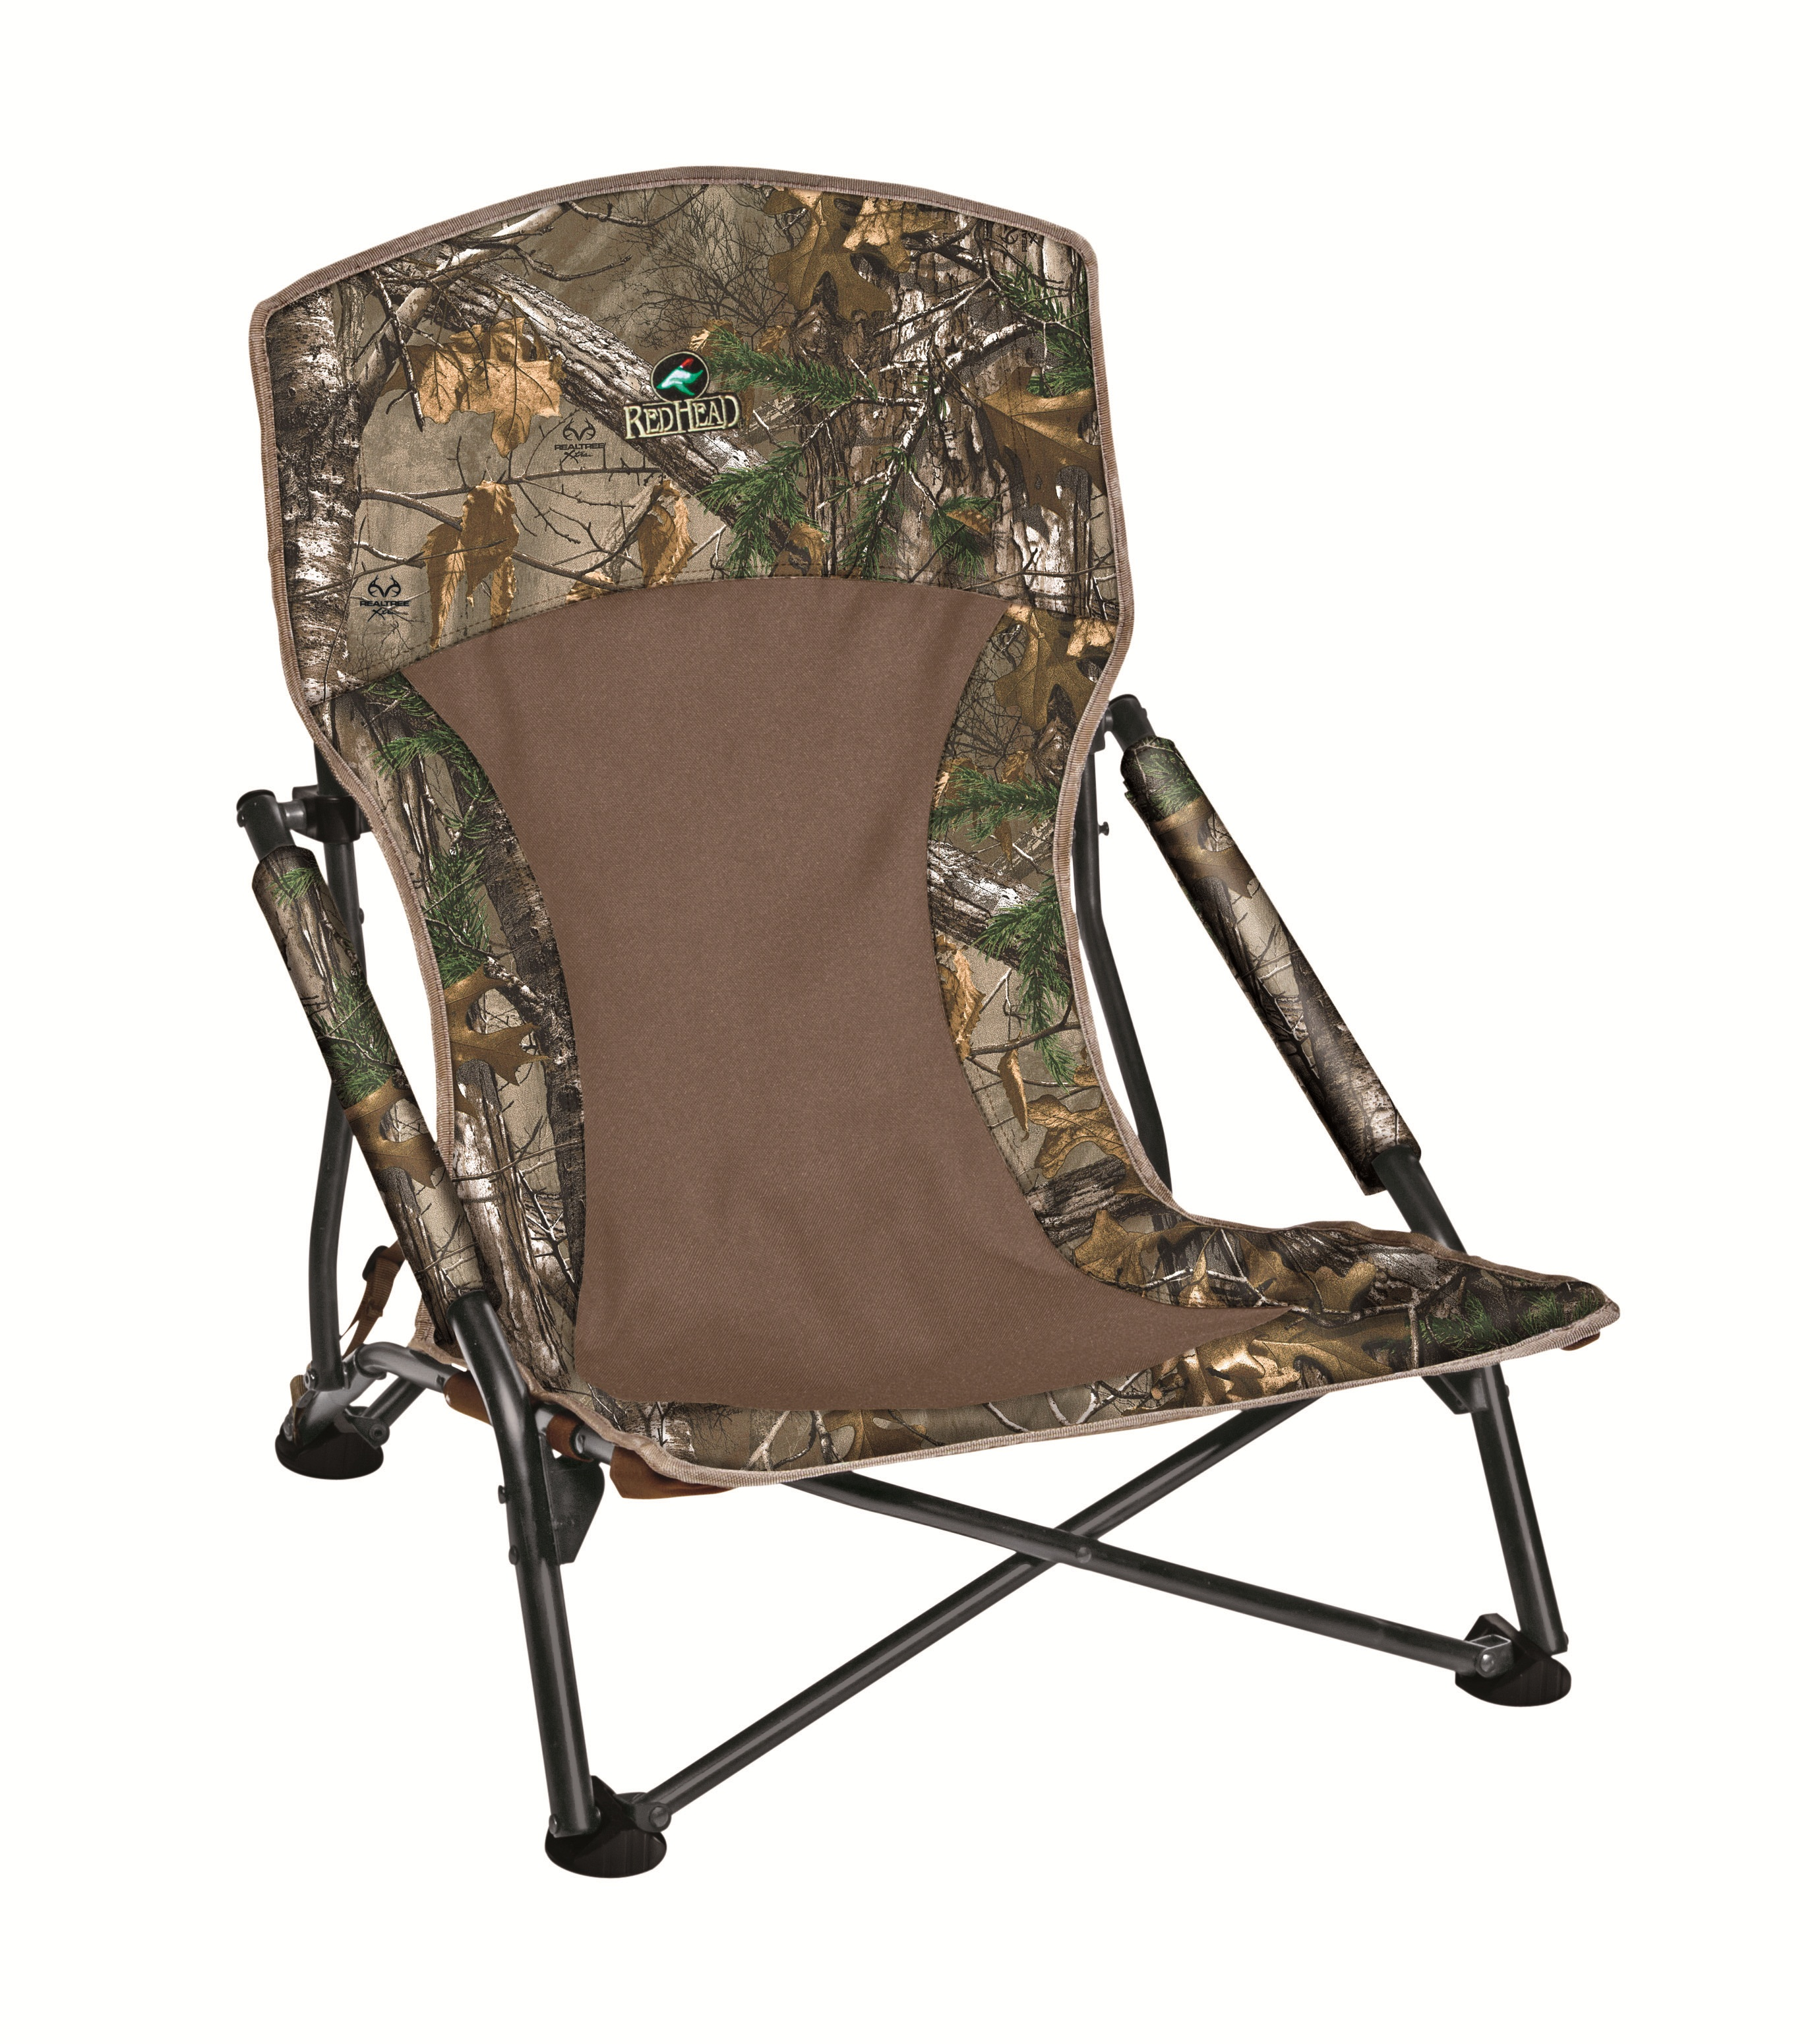 New Realtree Xtra Turkey Hunting Chair by RedHead